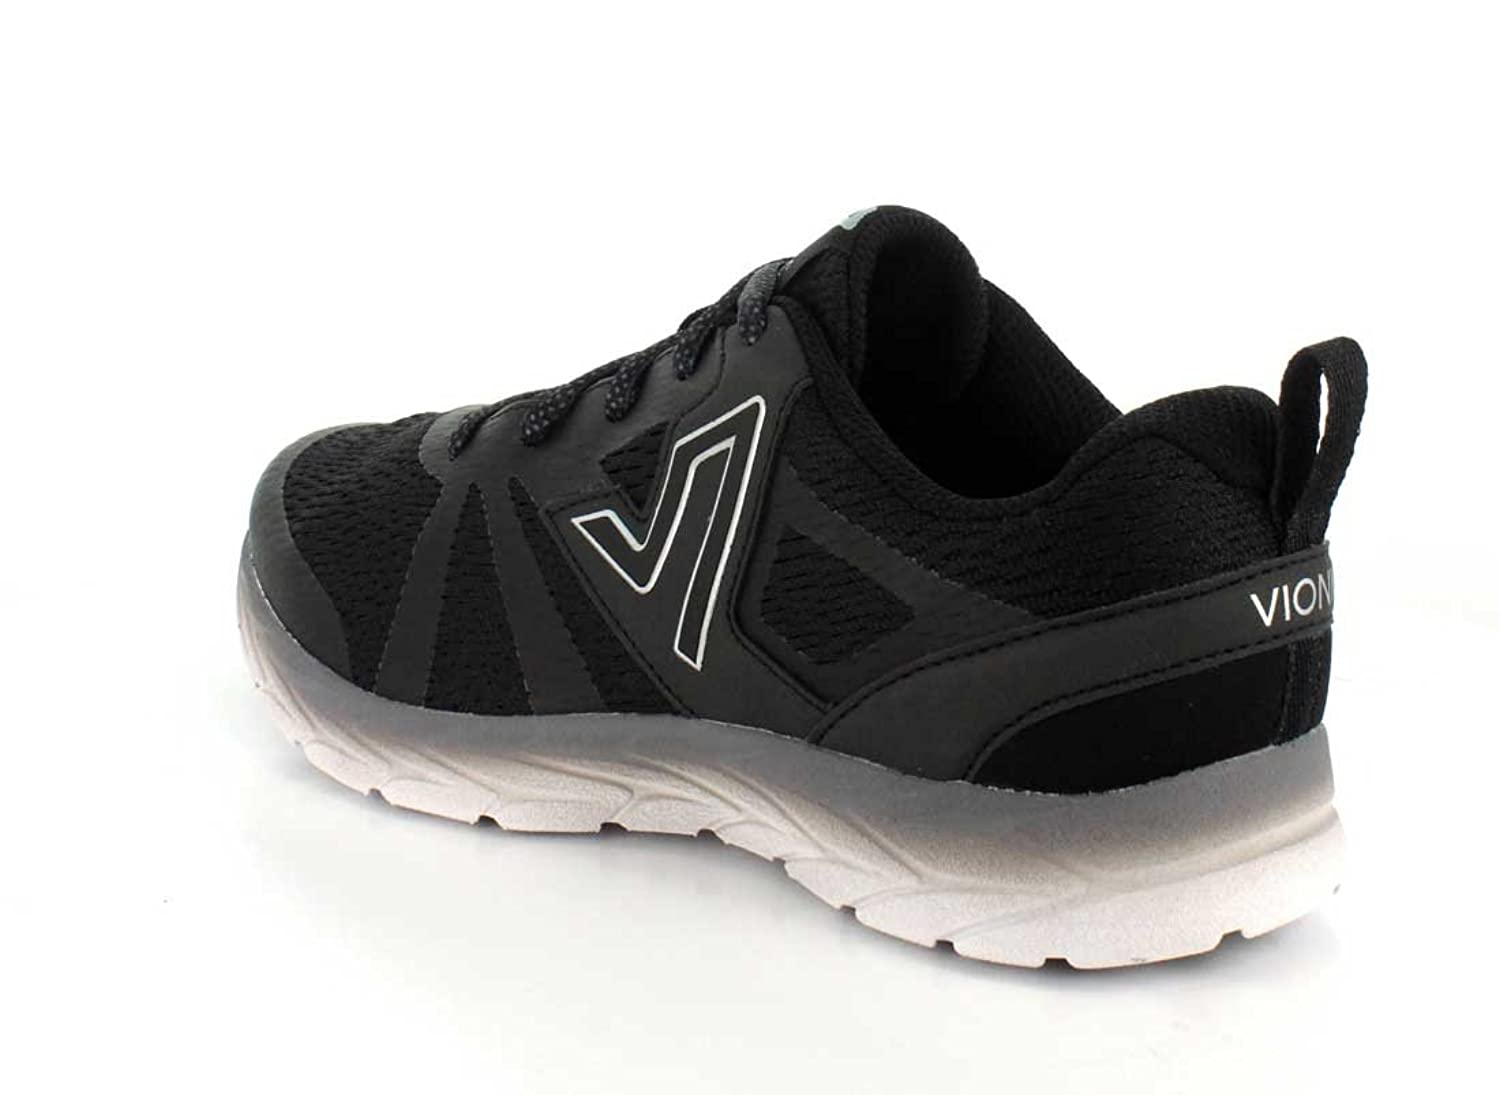 Vionic with Orthaheel Miles (Women's) lNrkYSr7